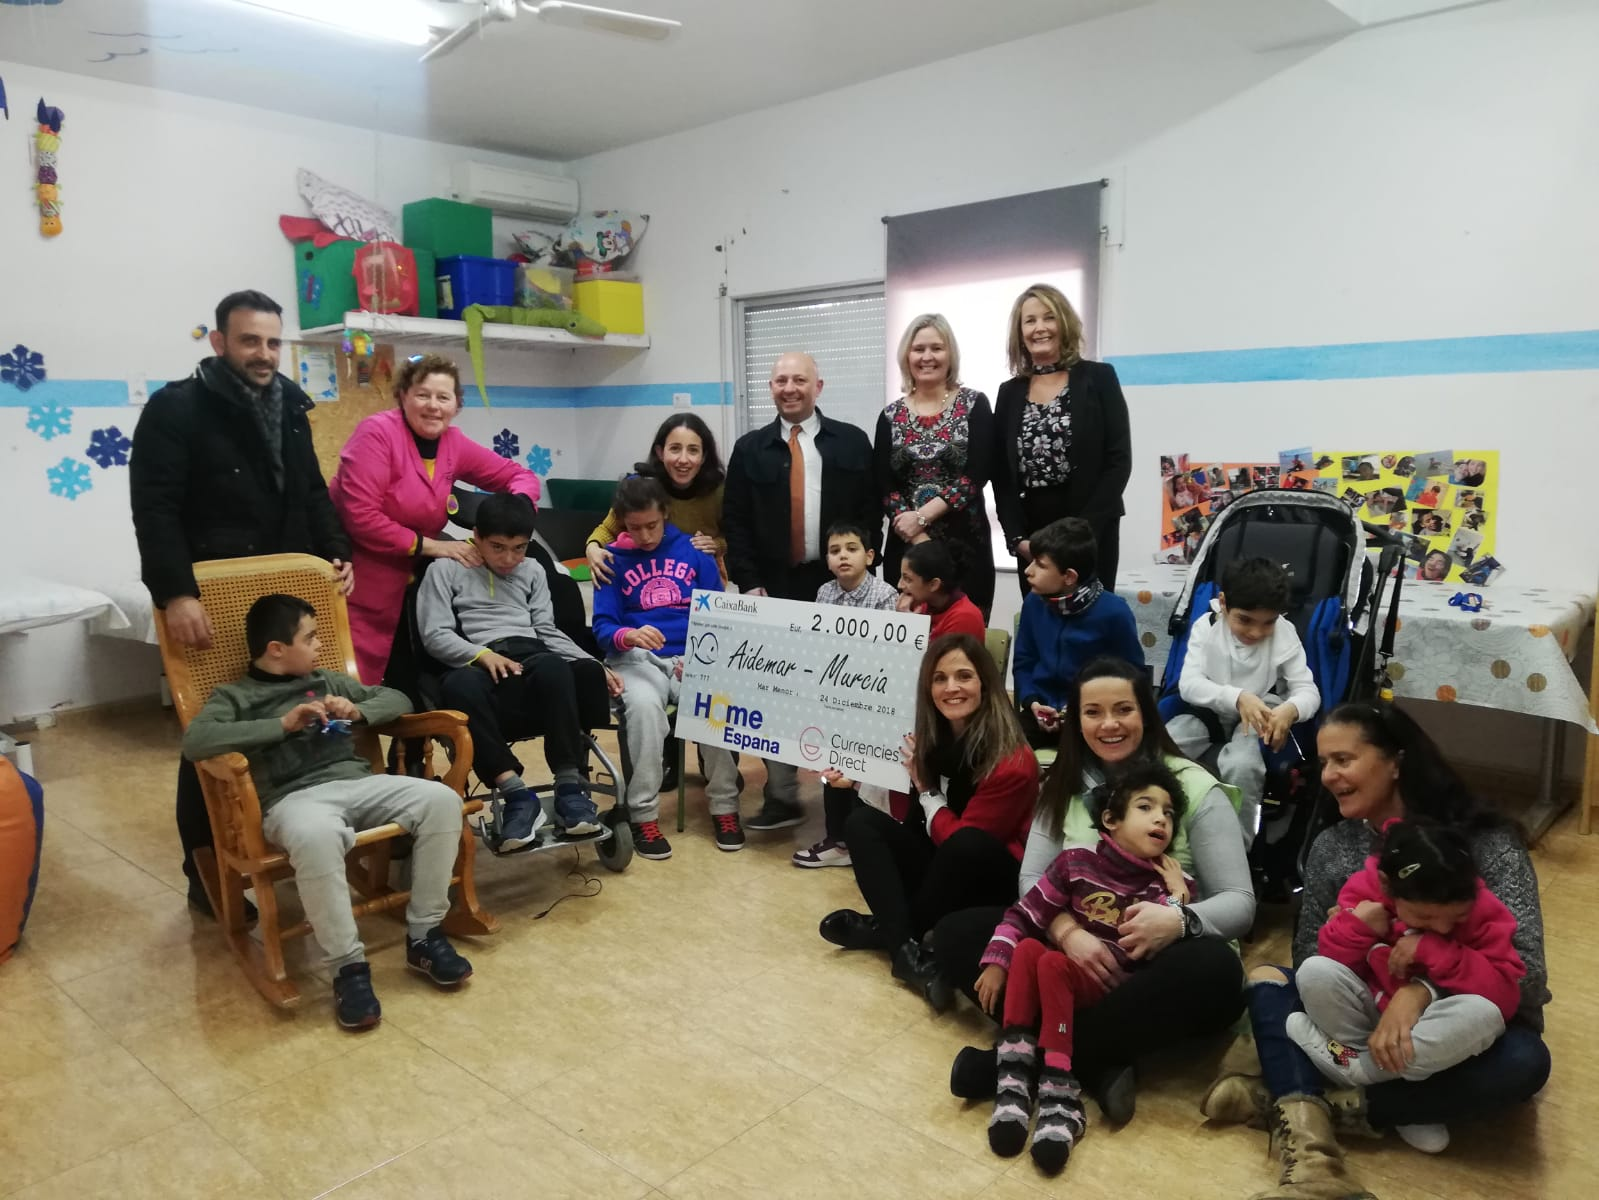 HomeEspaña & Currencies Direct raise €4,000 for local charities